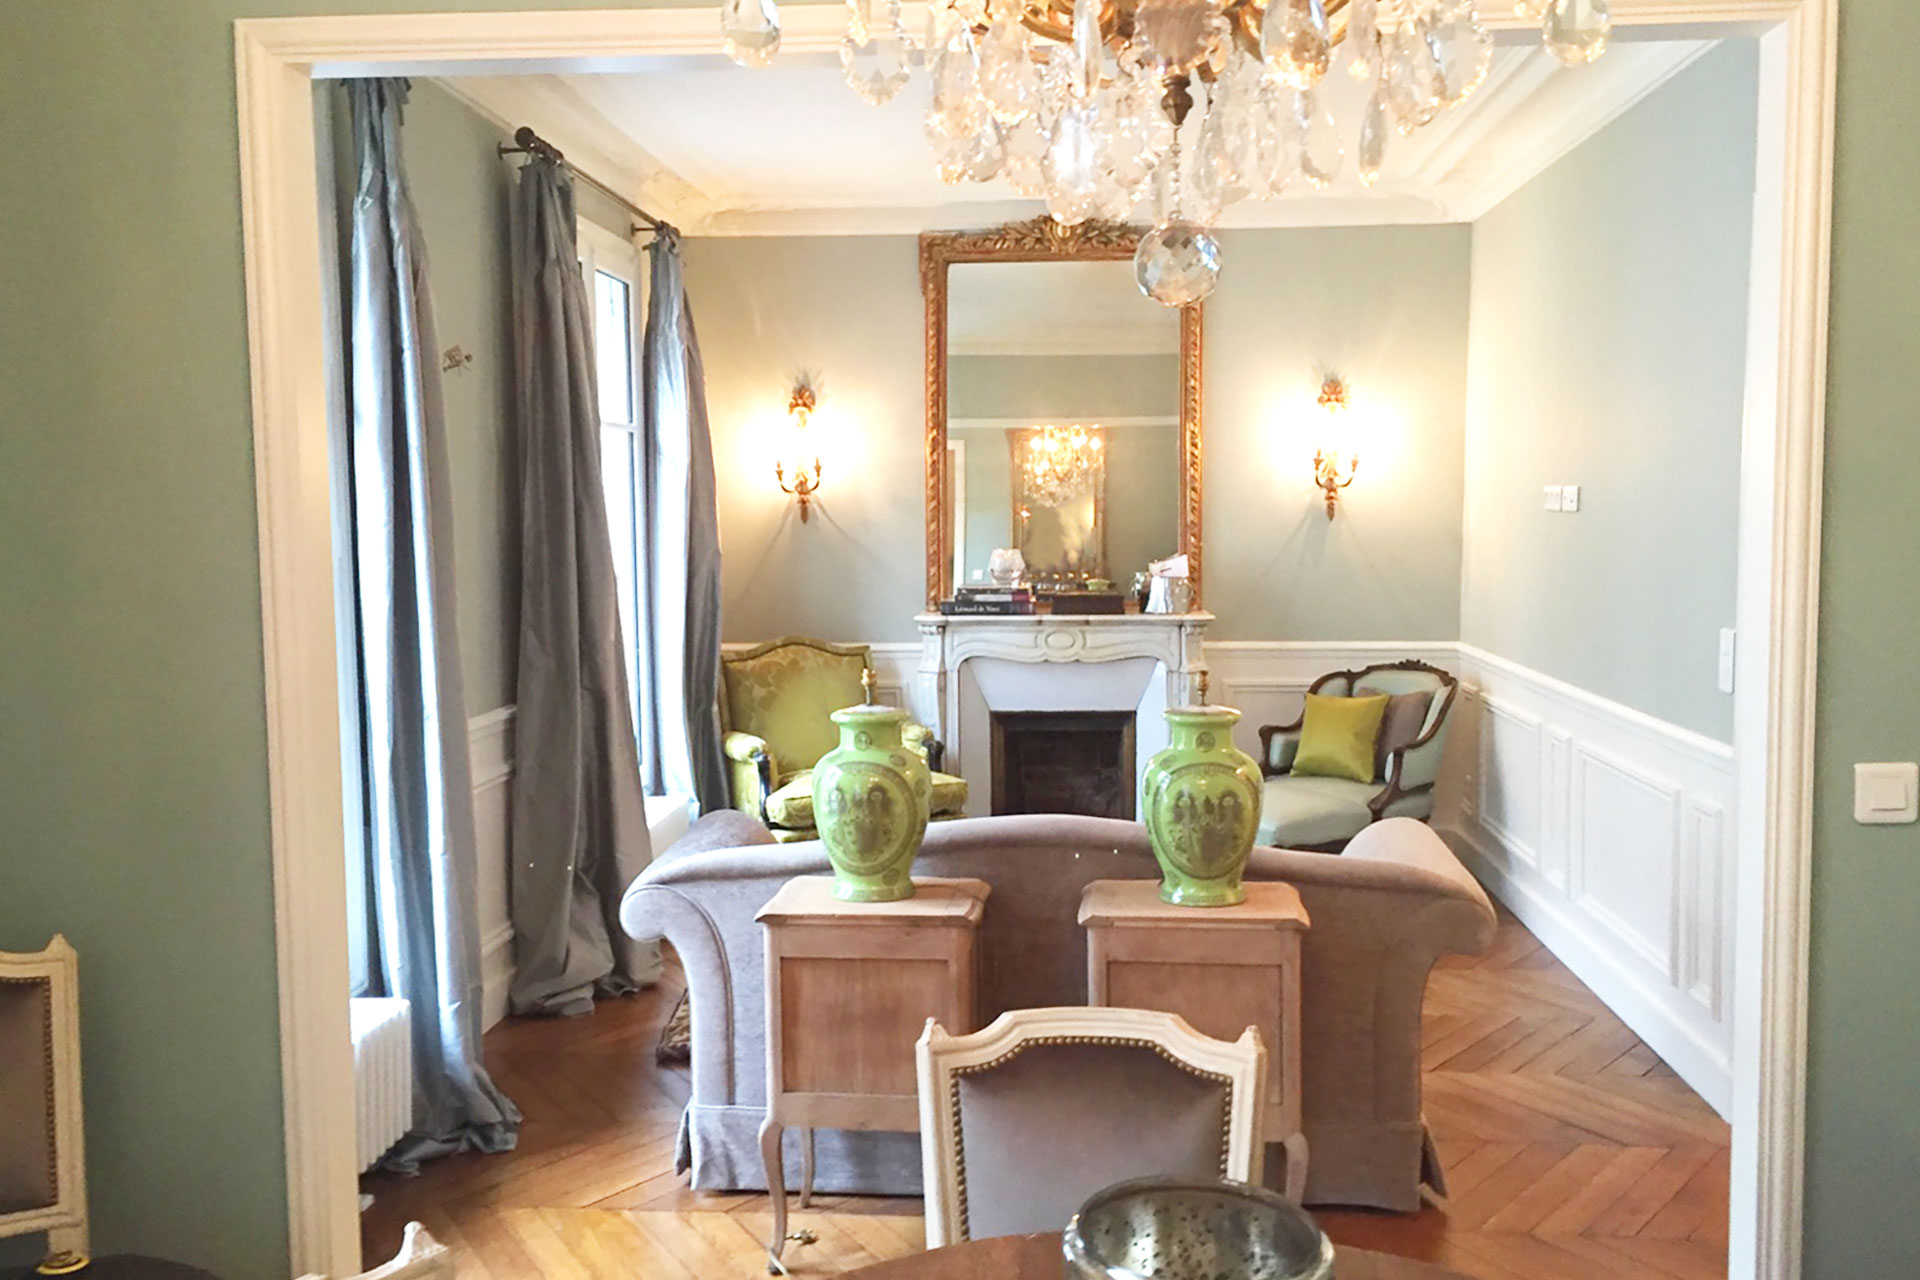 Welcome to the stunning Bourgogne vacation rental offered by Paris Perfect